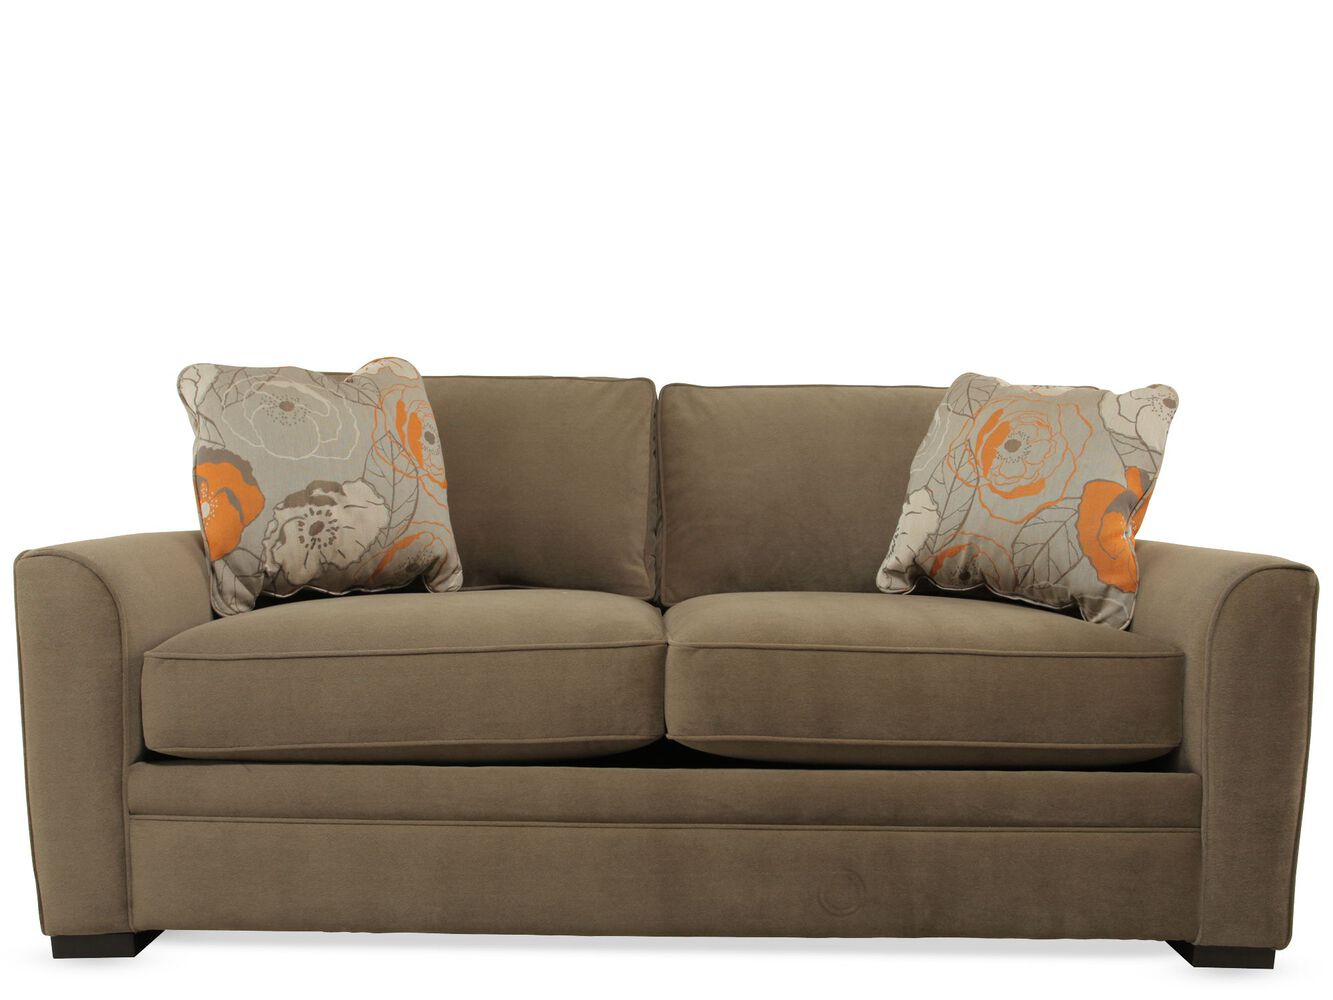 10 Best Sleeper Sofas For 2017 Comfortable Sofa Bed And